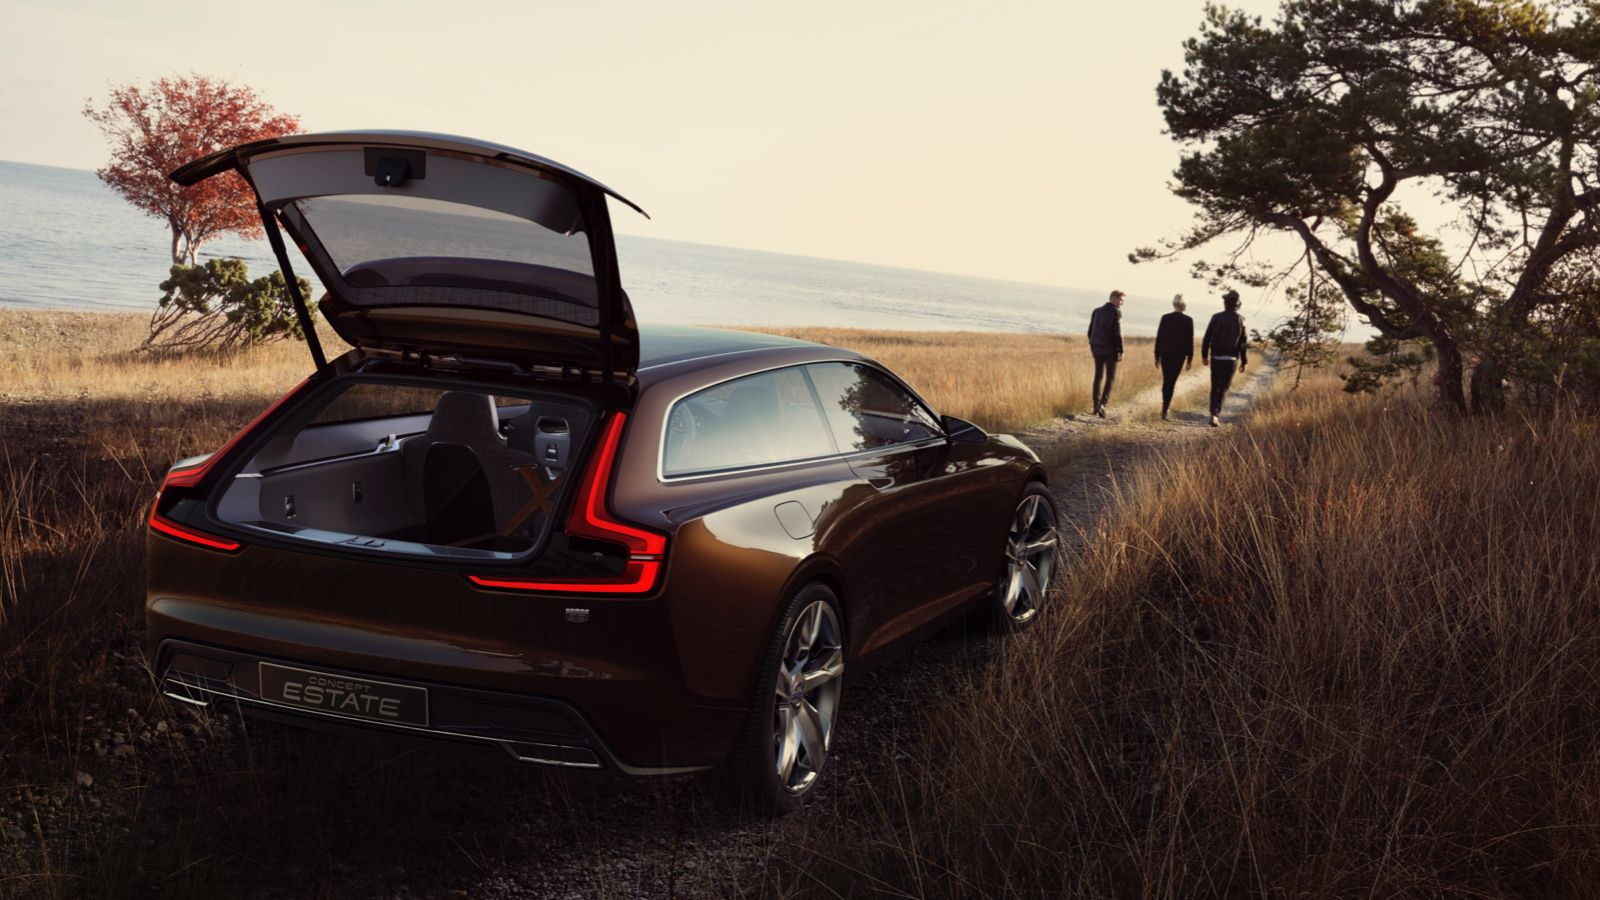 The Volvo Concept Estate Is An Unfathomably Gorgeous Shooting Brake Volvo Volvo Estate Volvo Cars